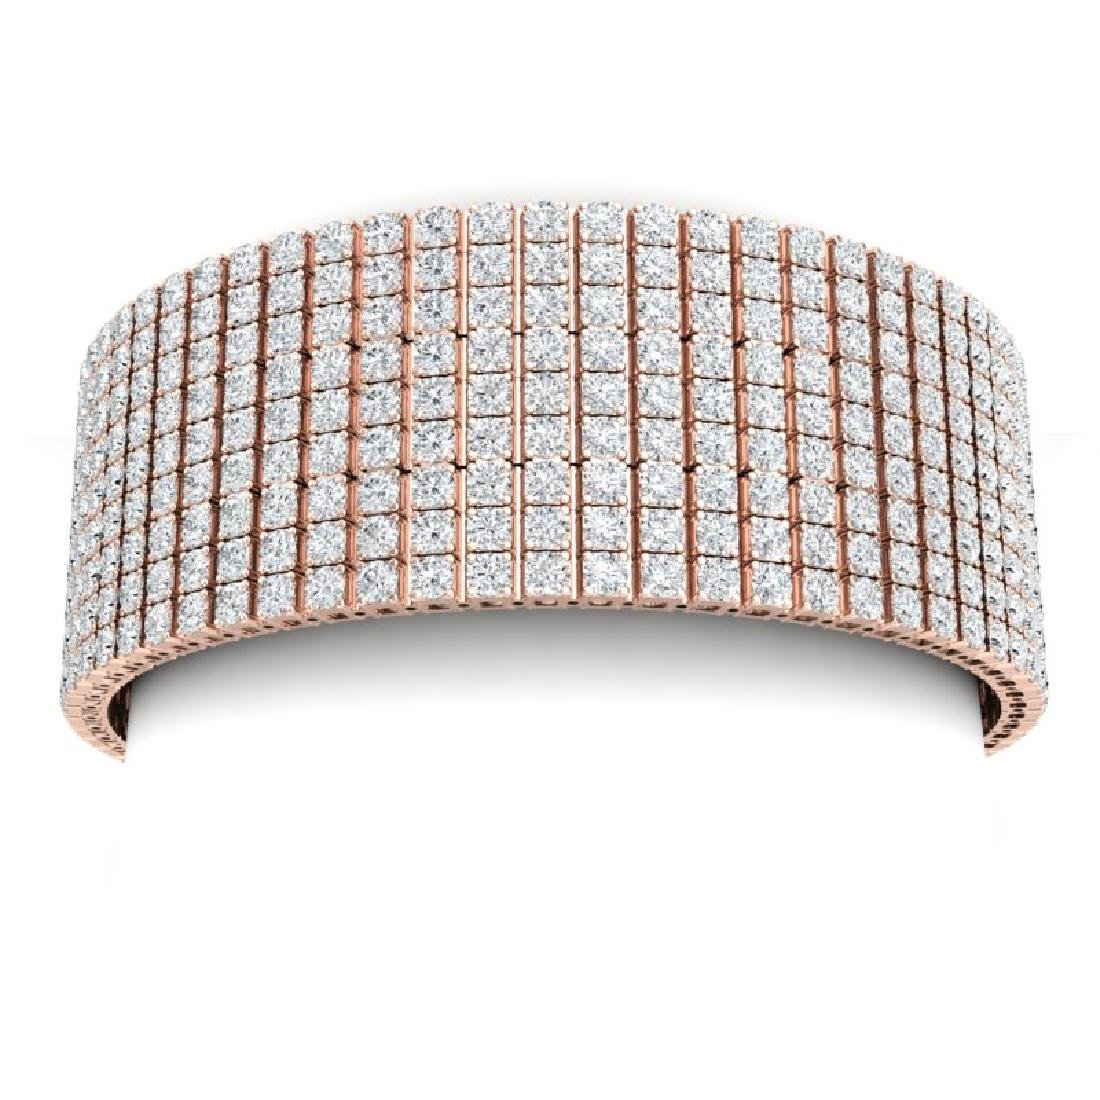 40 CTW Certified VS/SI Diamond Bracelet 18K Rose Gold - 2